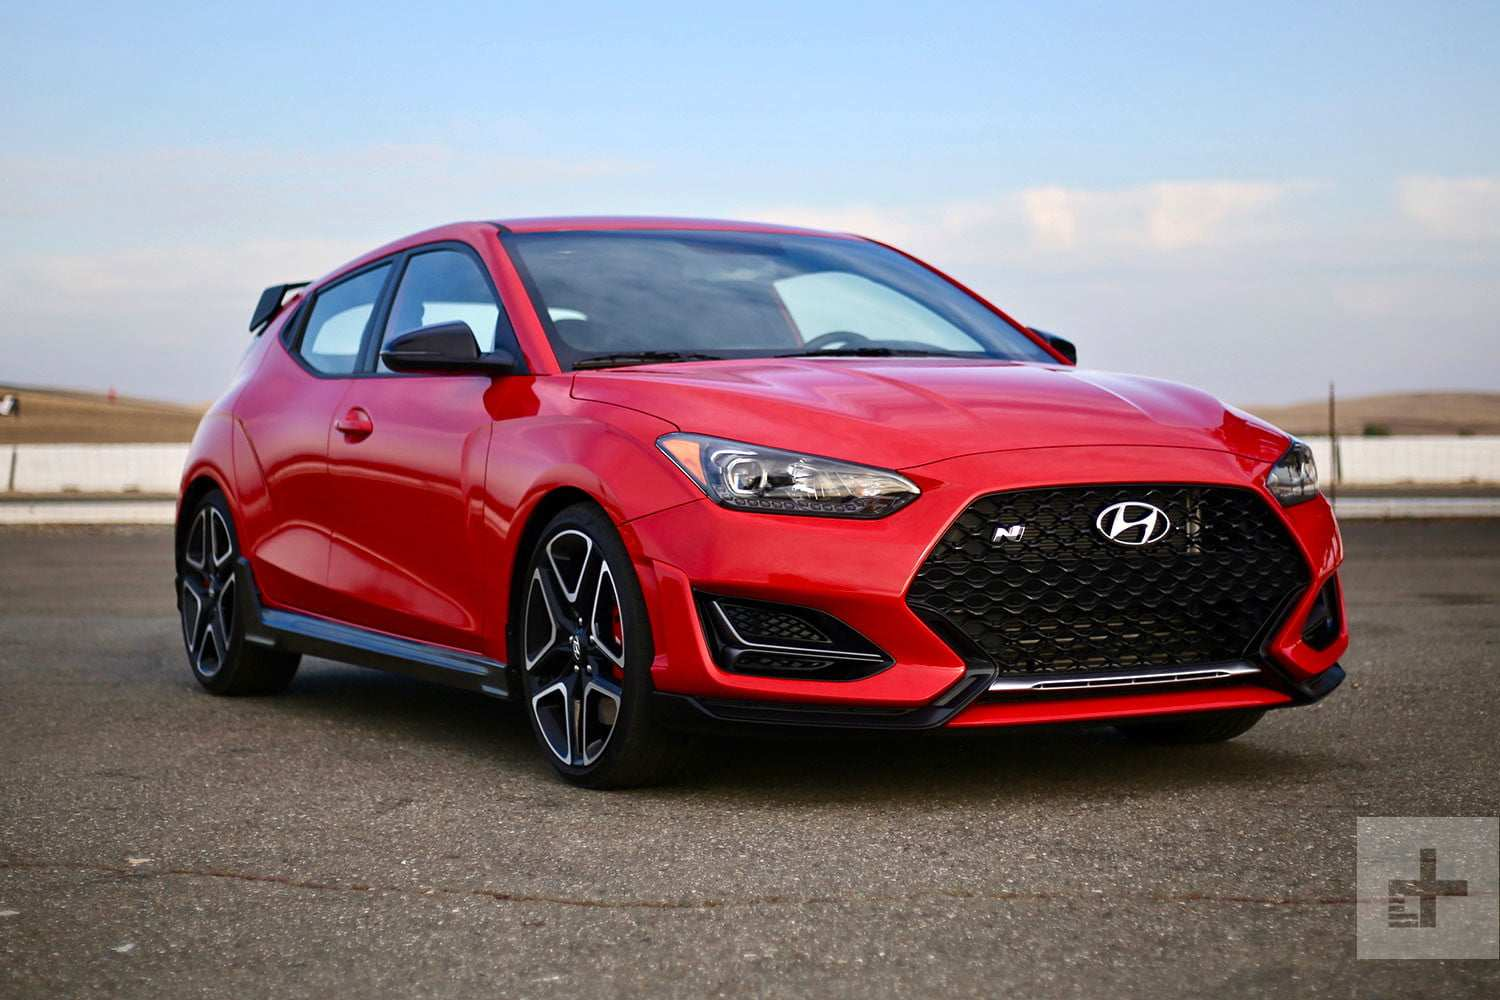 71 Concept of 2019 Hyundai Veloster N Review for 2019 Hyundai Veloster N